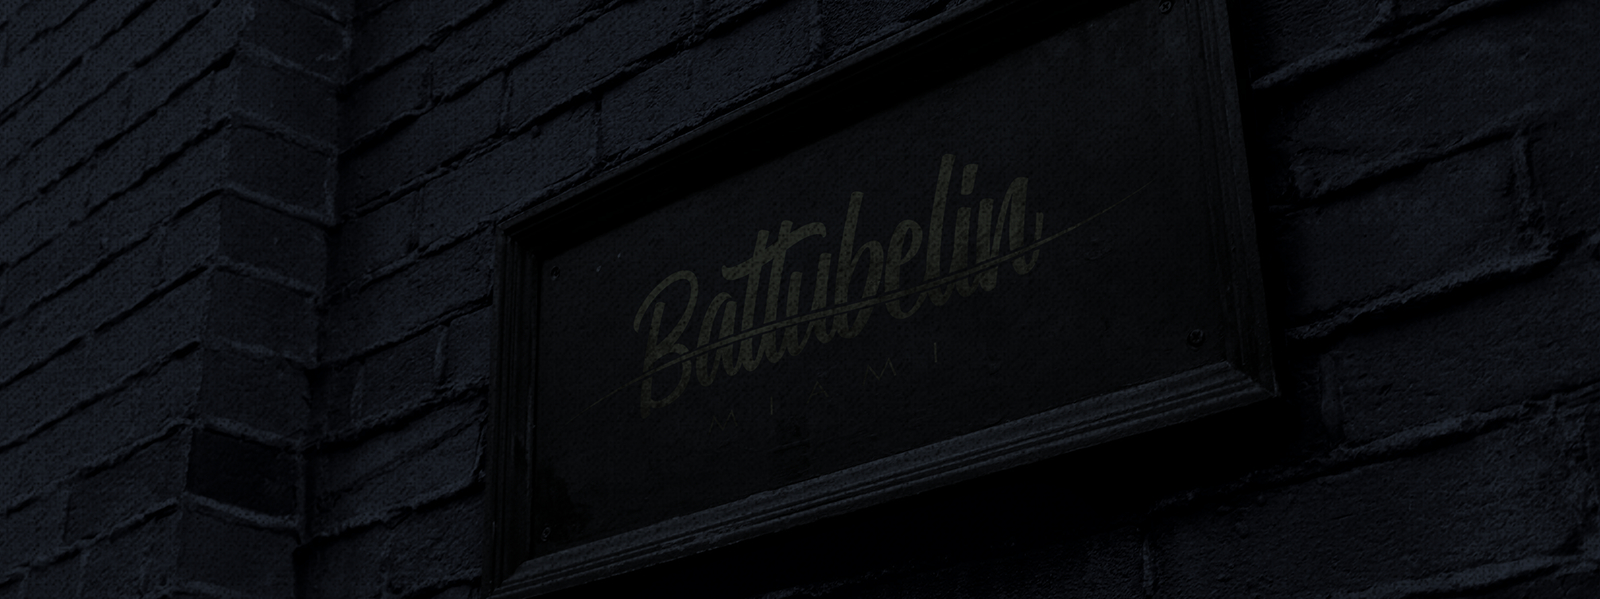 Battubelin Restaurant Miami